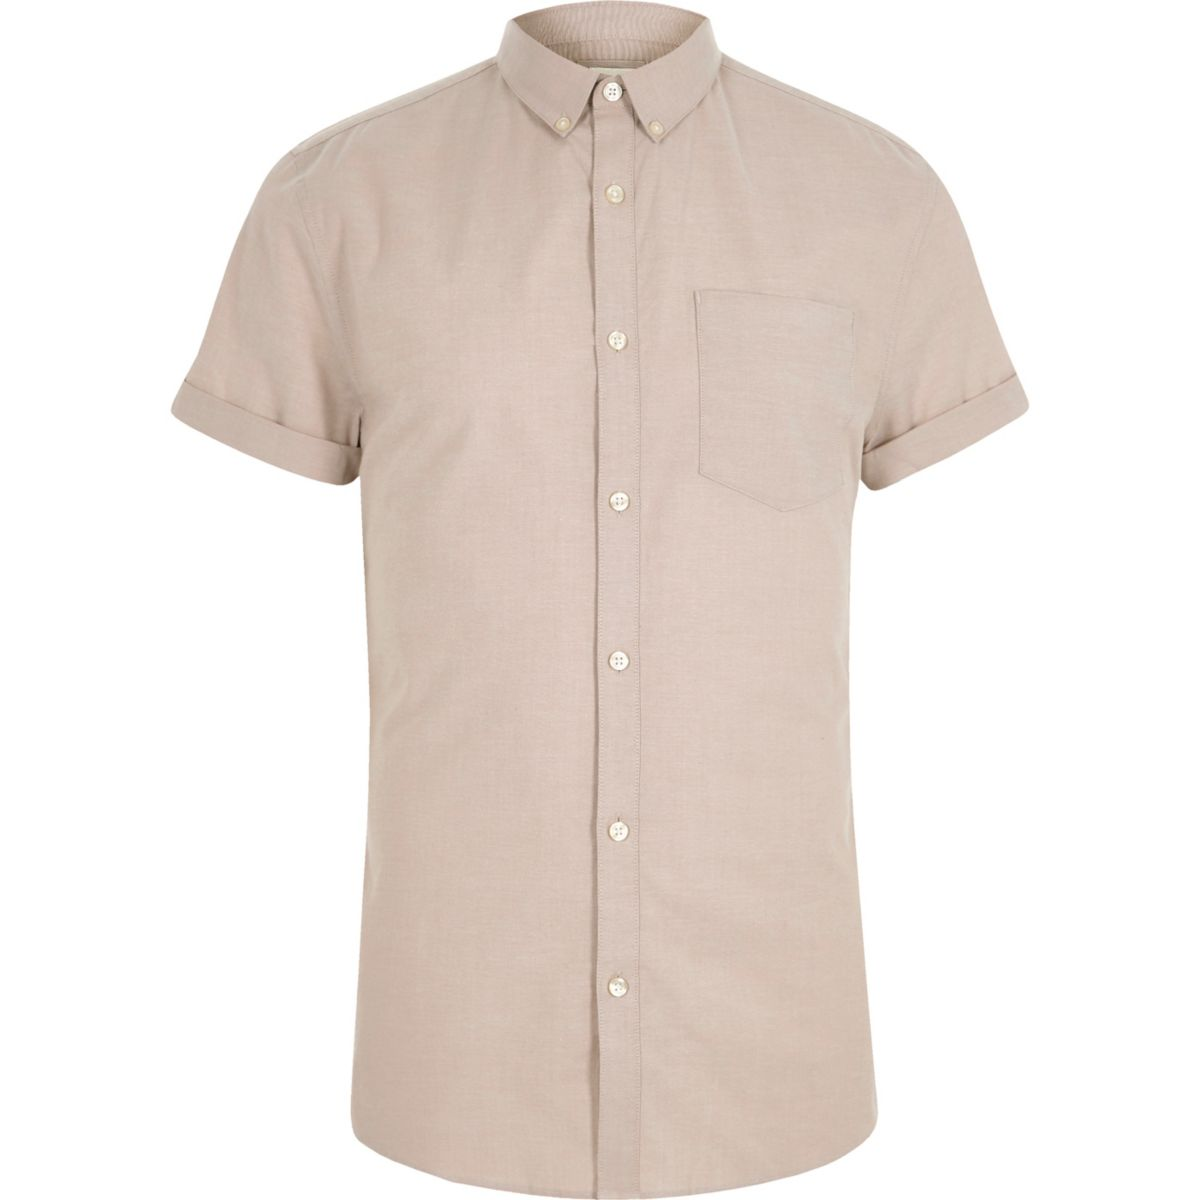 Stone muscle fit short sleeve Oxford shirt